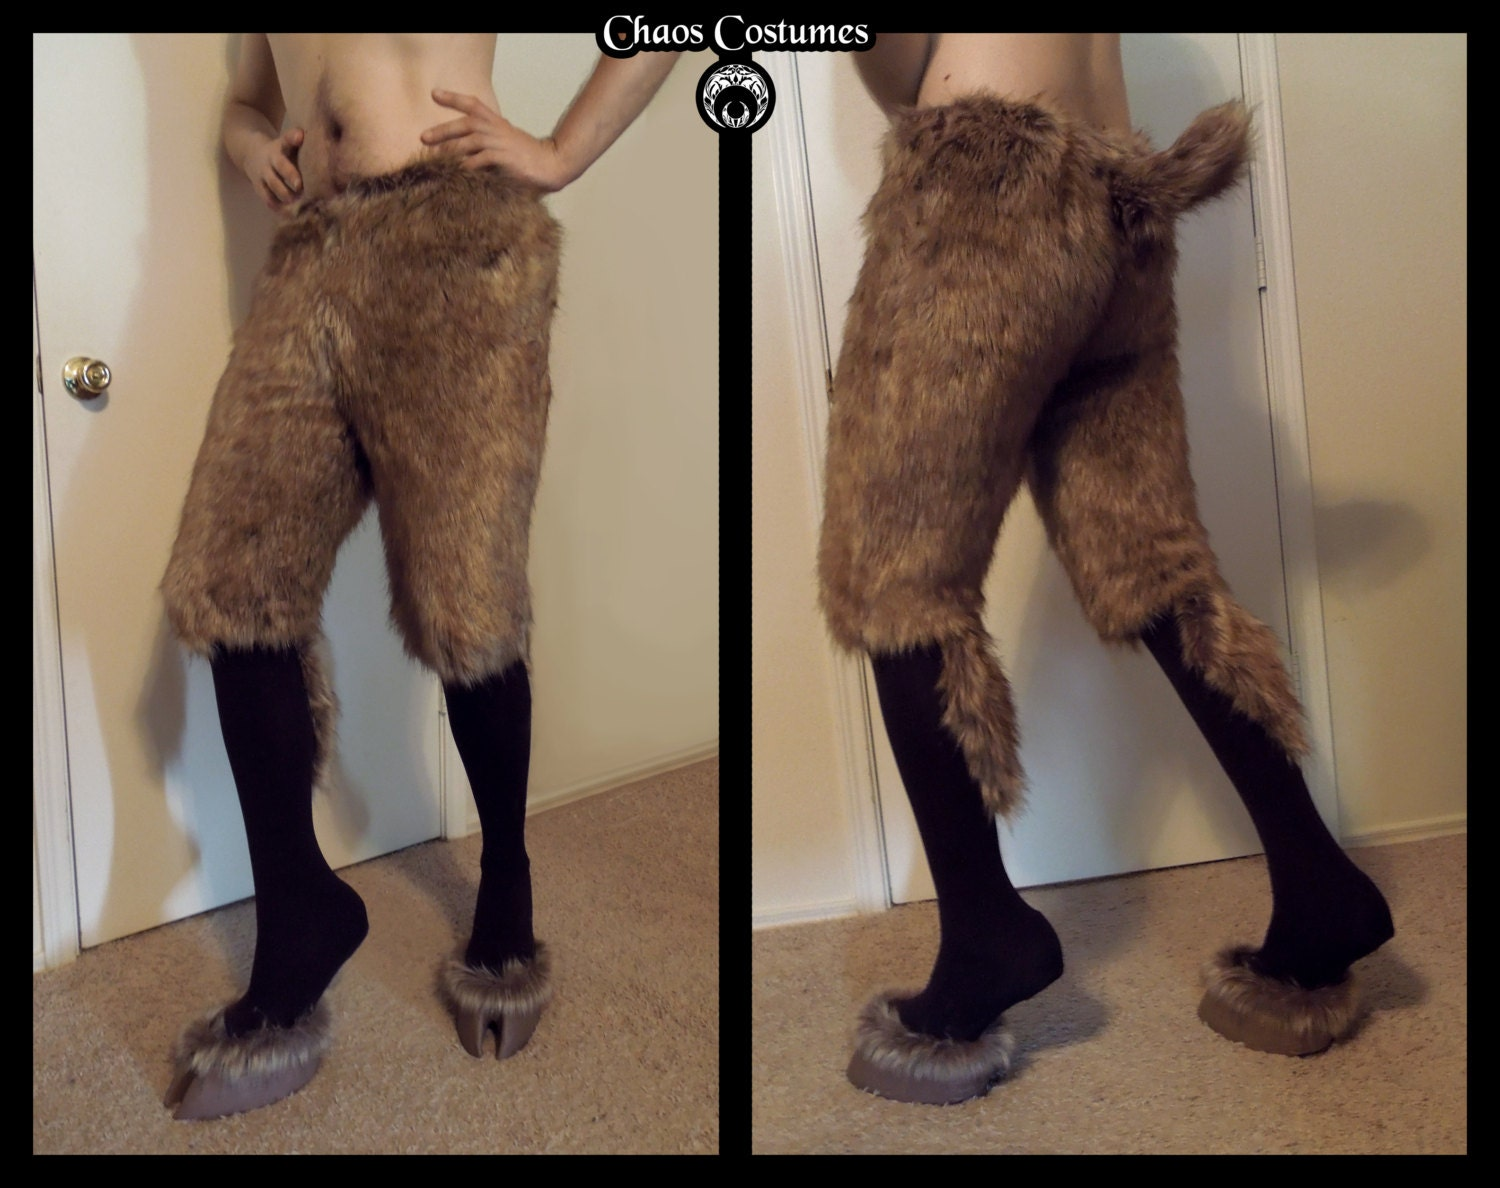 Faun Leggings Hooves Fur Uppers Chaoscostumes